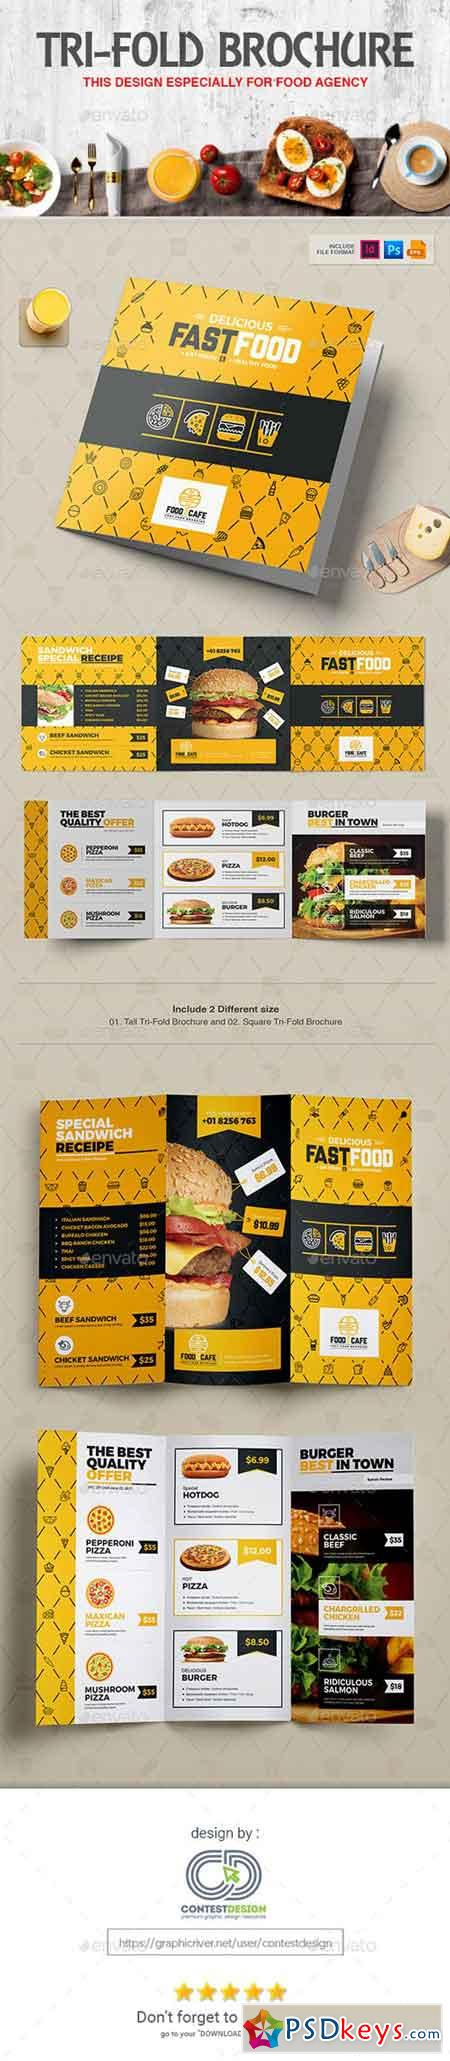 Tri-Fold Brochure Square & Tall Design Template for Fast Food Restaurants Cafe 20308586